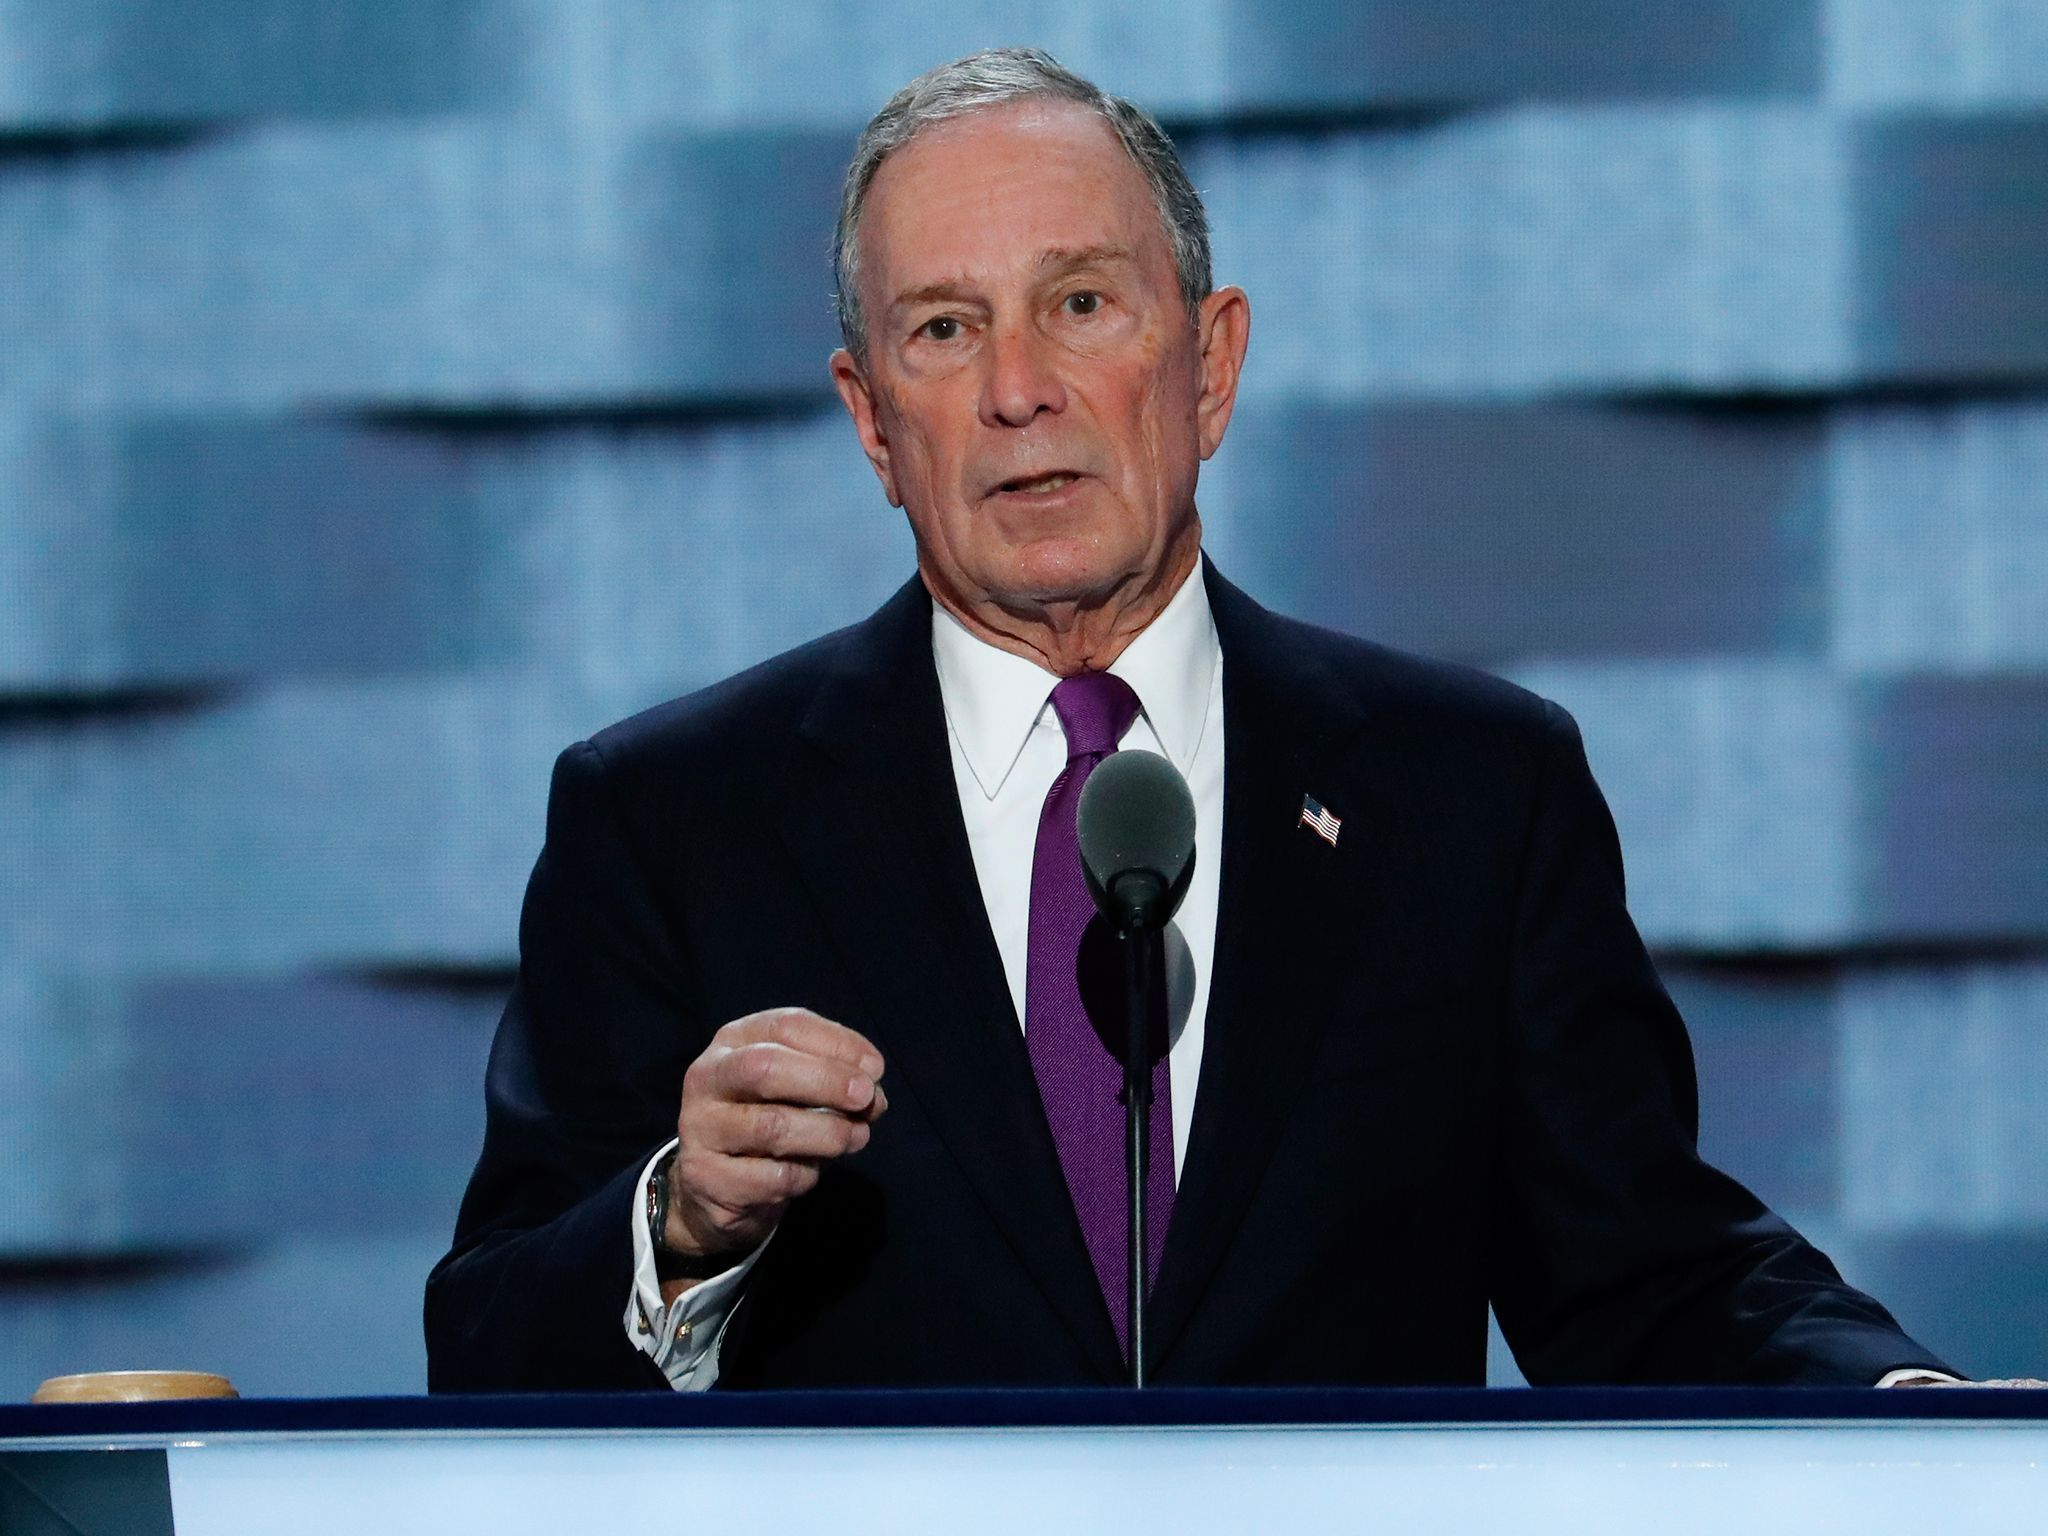 Bloomberg At Democratic Convention Backs The Sane Competent Person Against Donald Trump